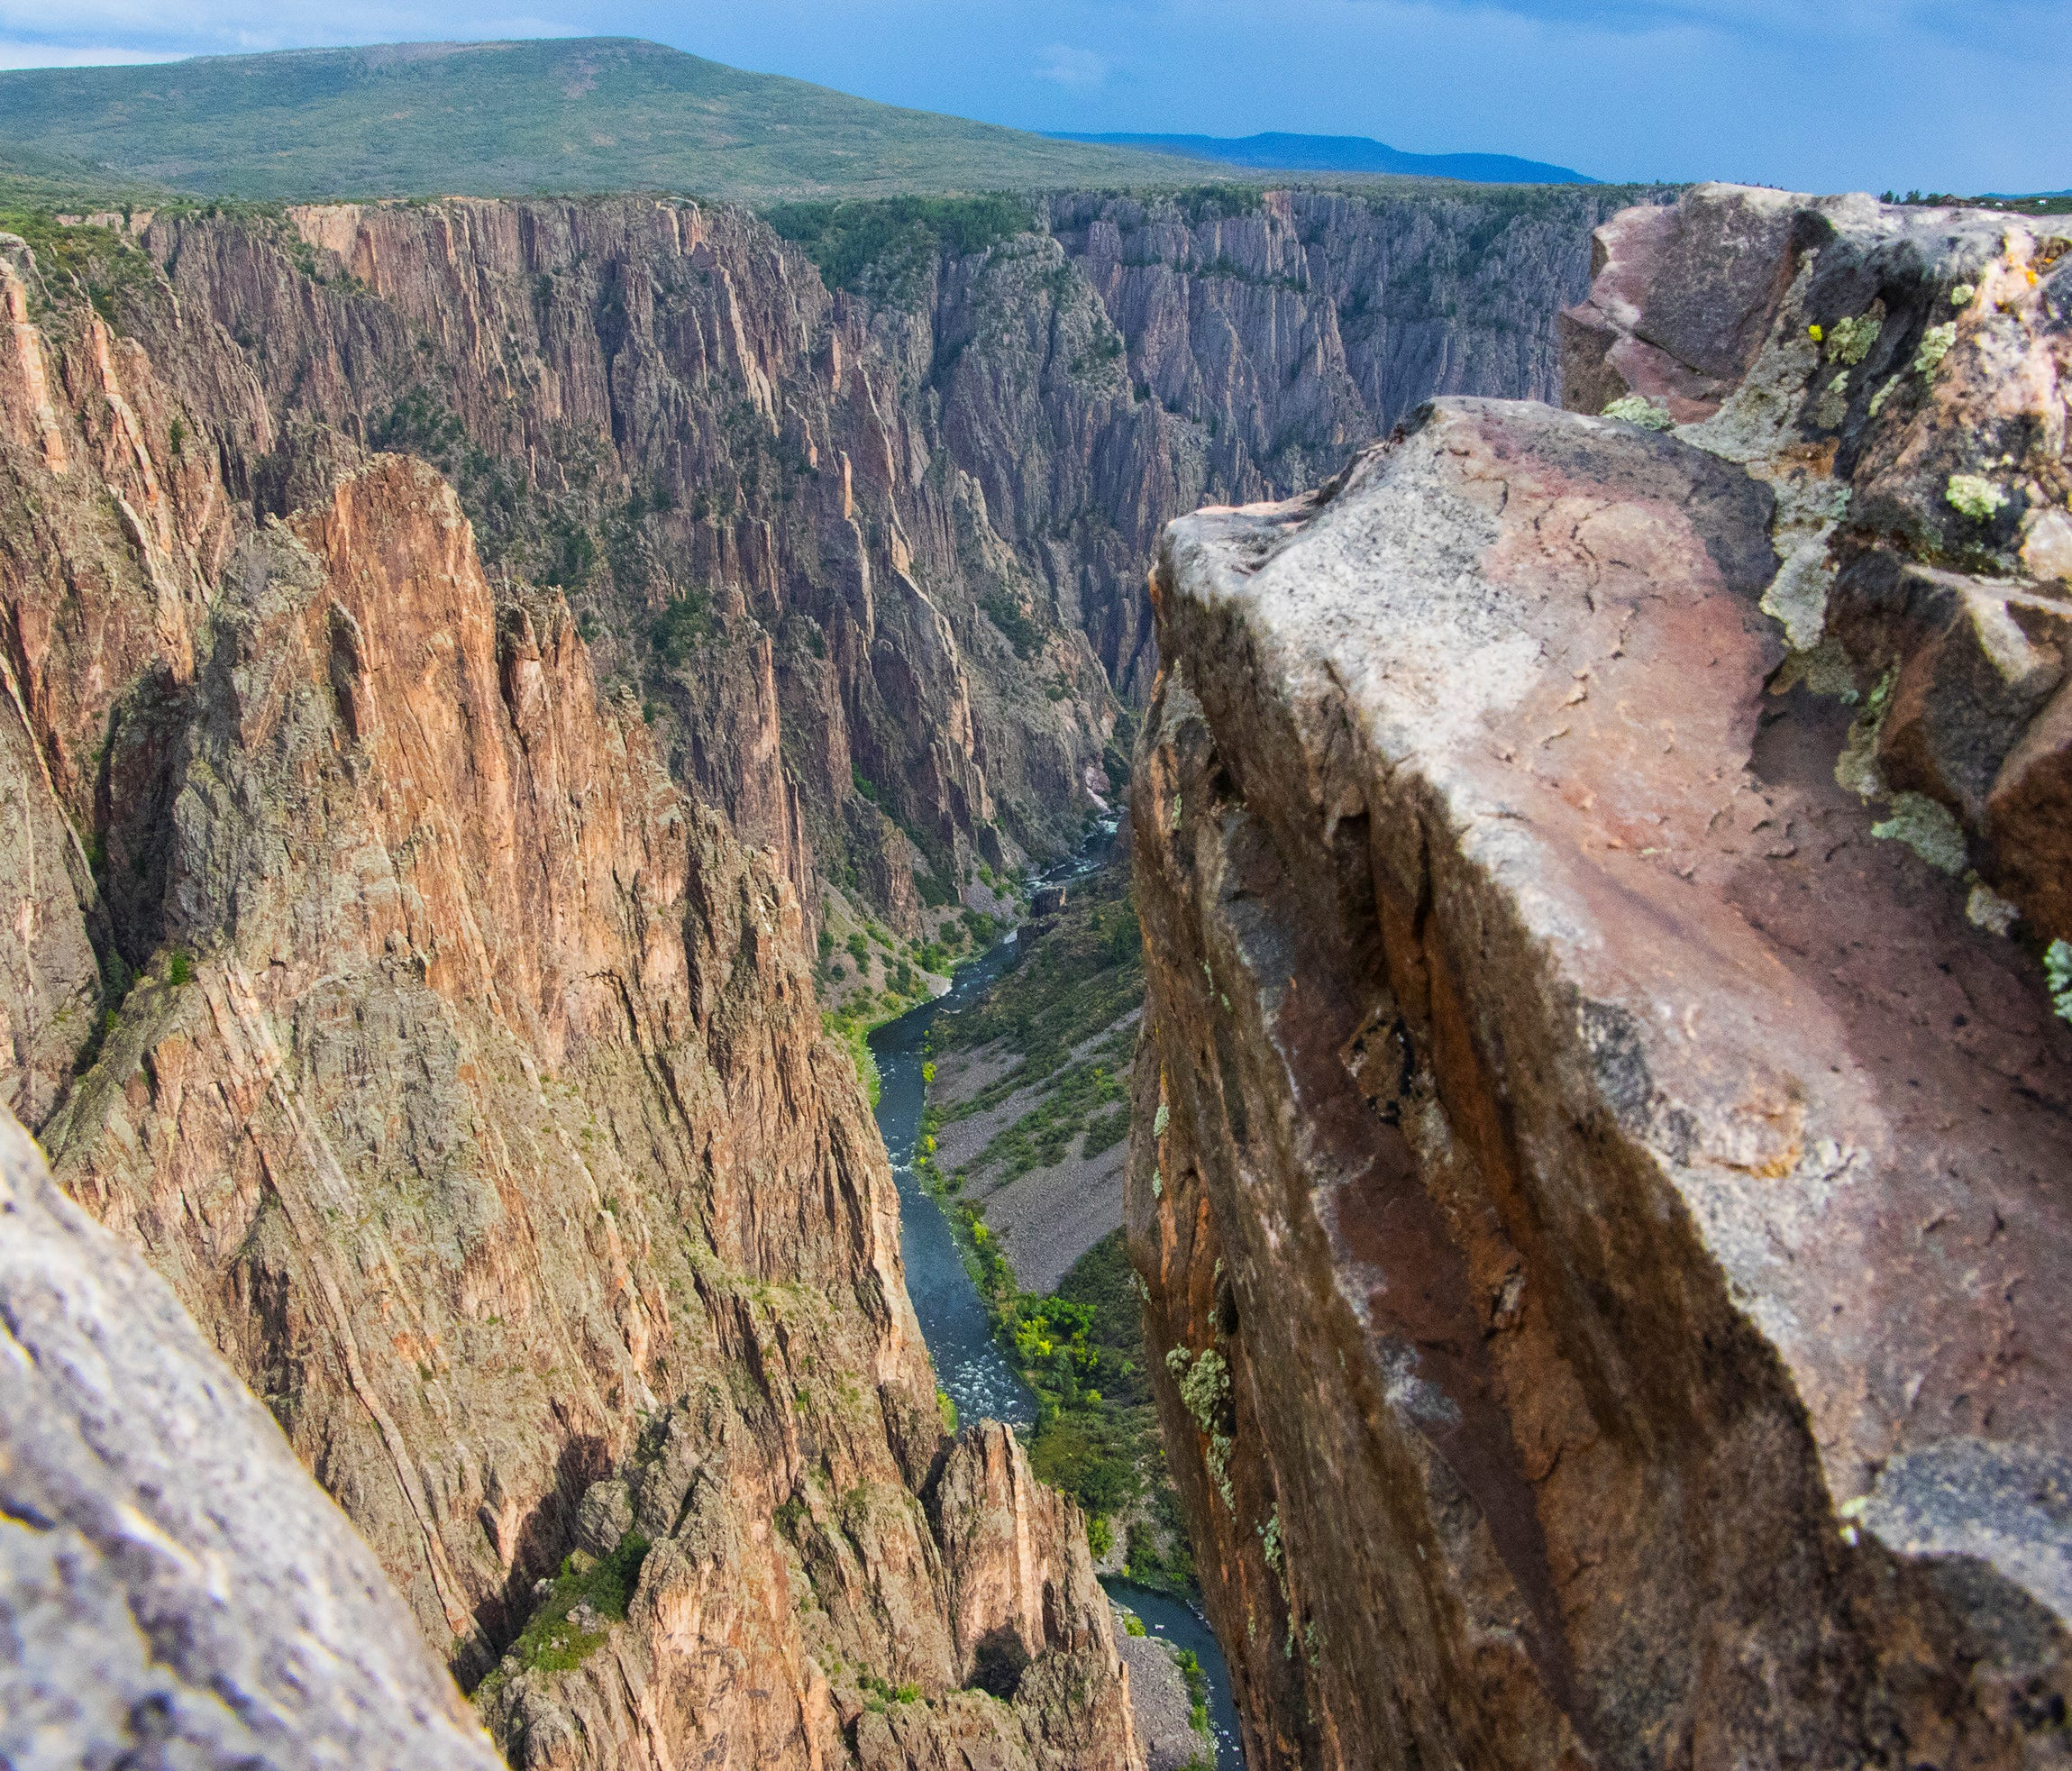 Black Canyon Of The Gunnison National Park: 10 Ways To See